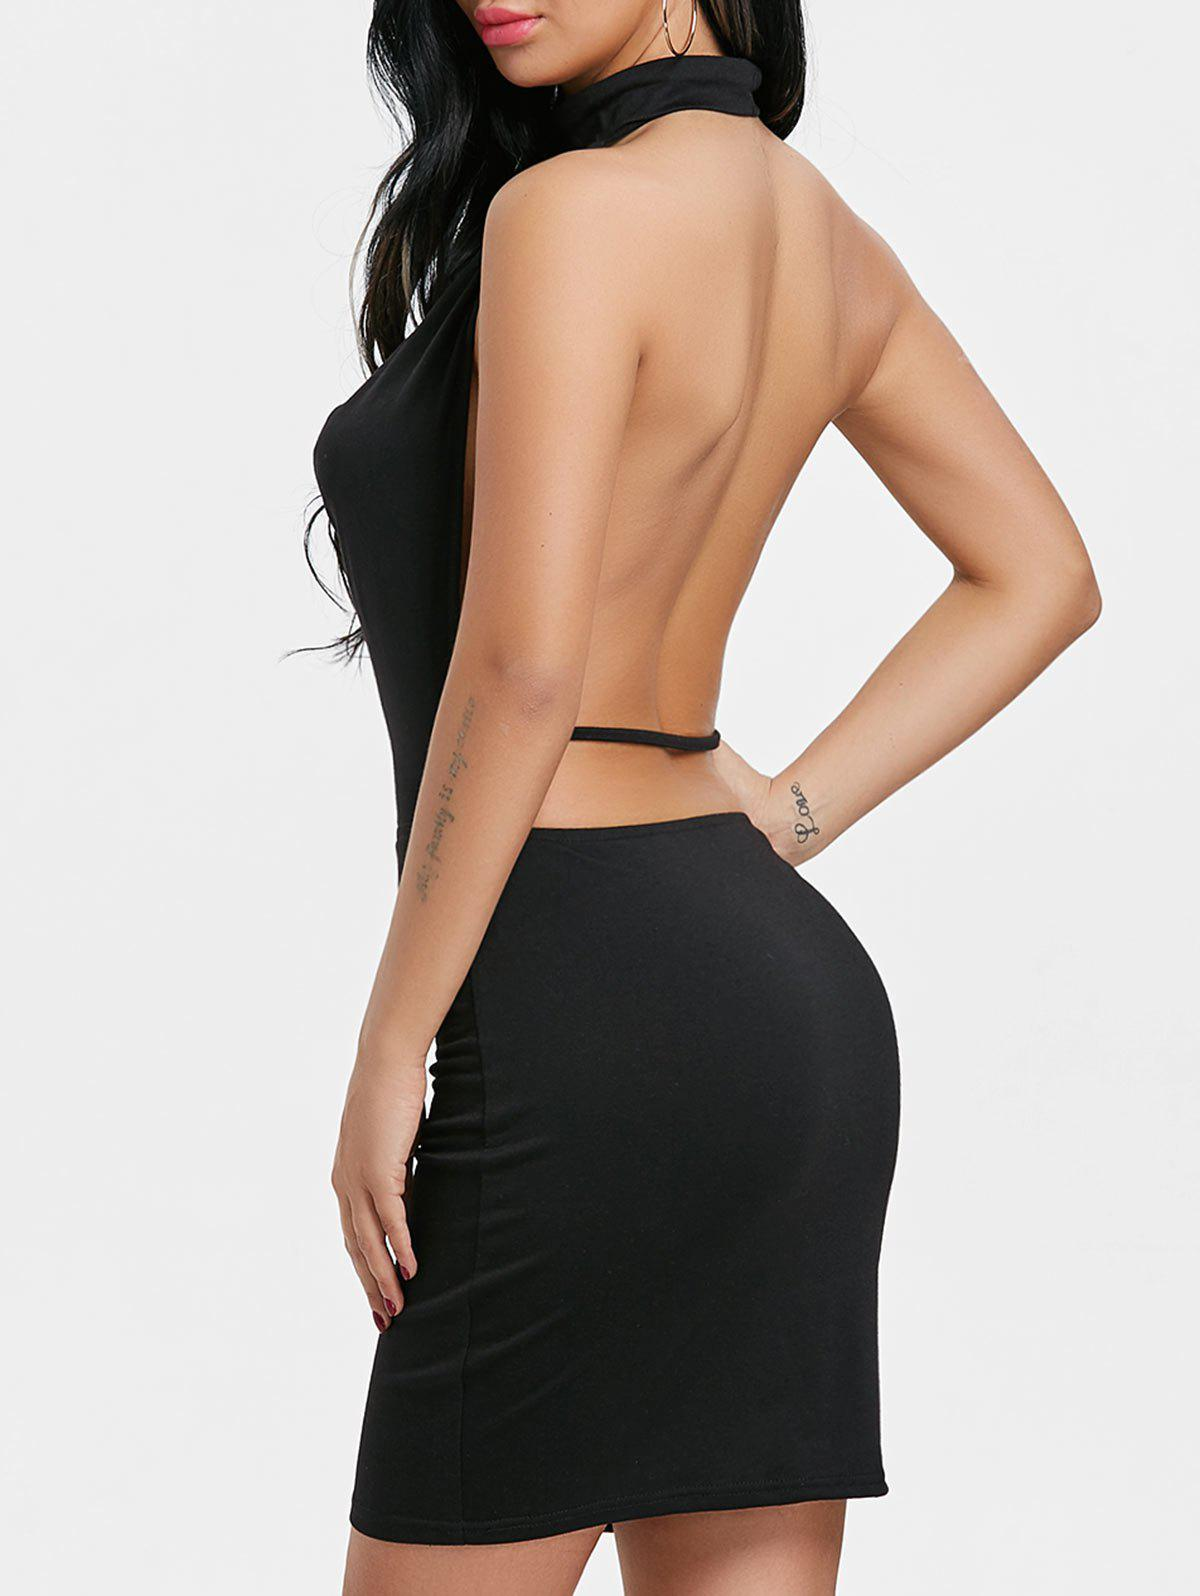 Backlesss Draped Halter Neck Dress with Choker - BLACK XL